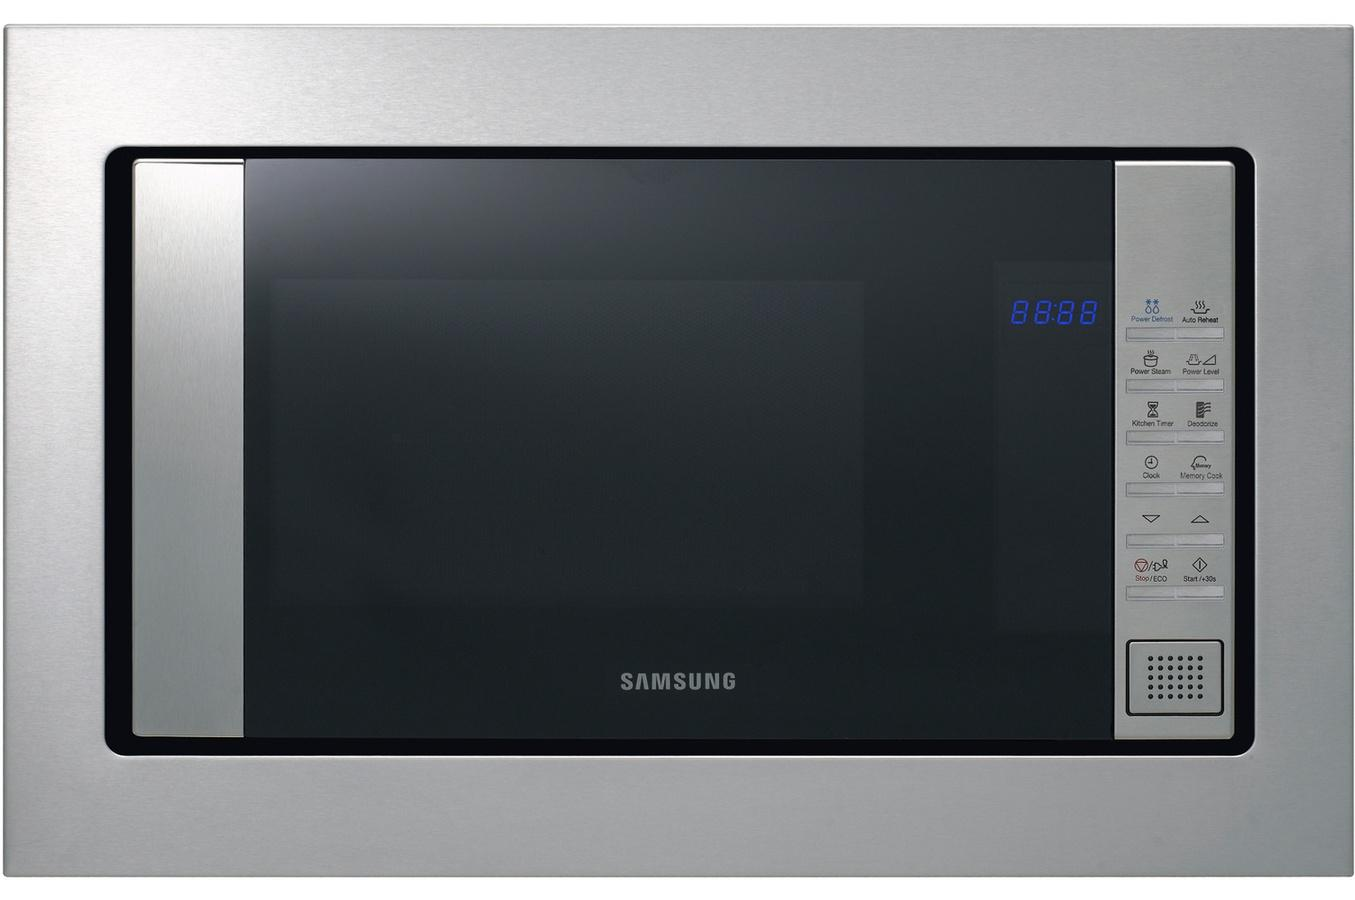 Photo Micro Ondes Encastrable Samsung FW77SUST